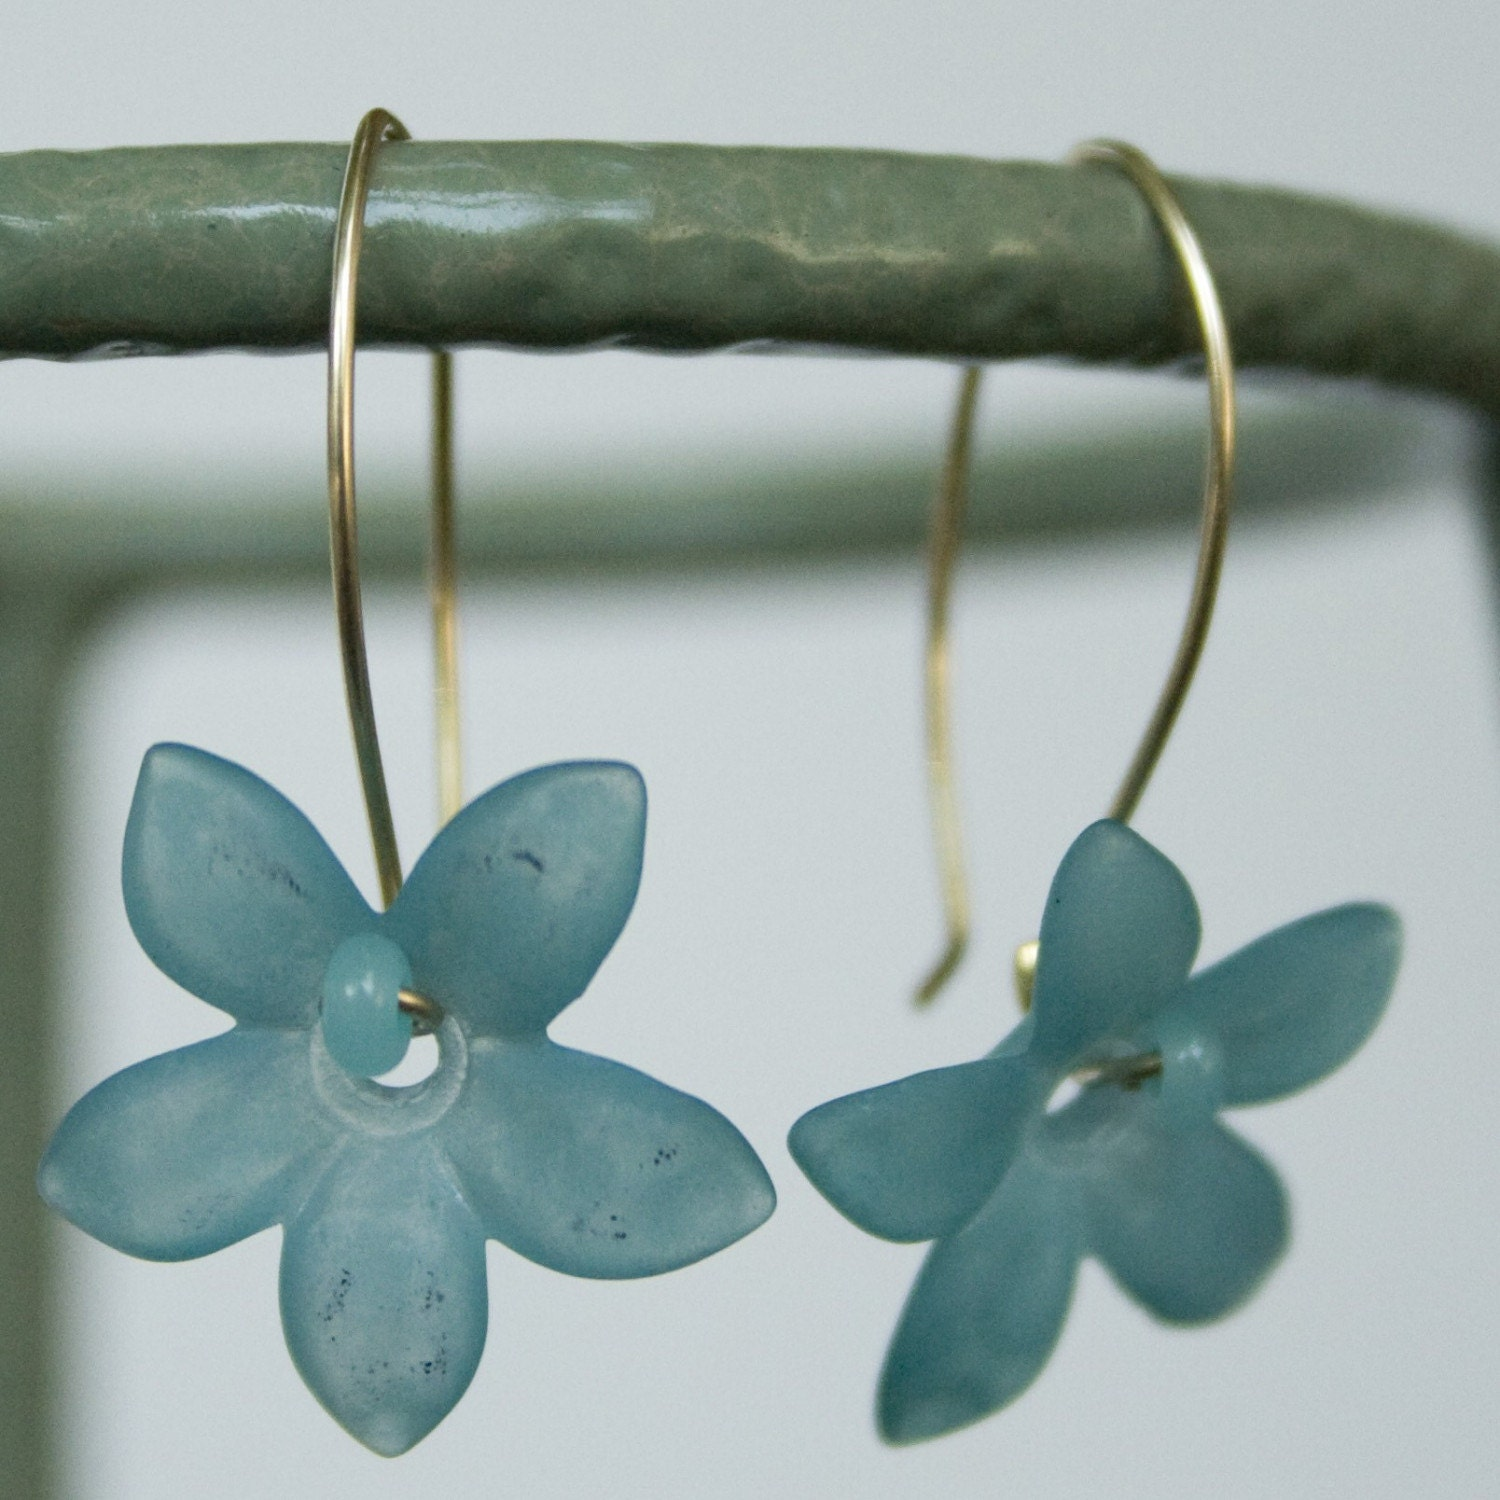 Blue vintage flower earrings from Ida Jefsen Design featured on Shopalicious.com